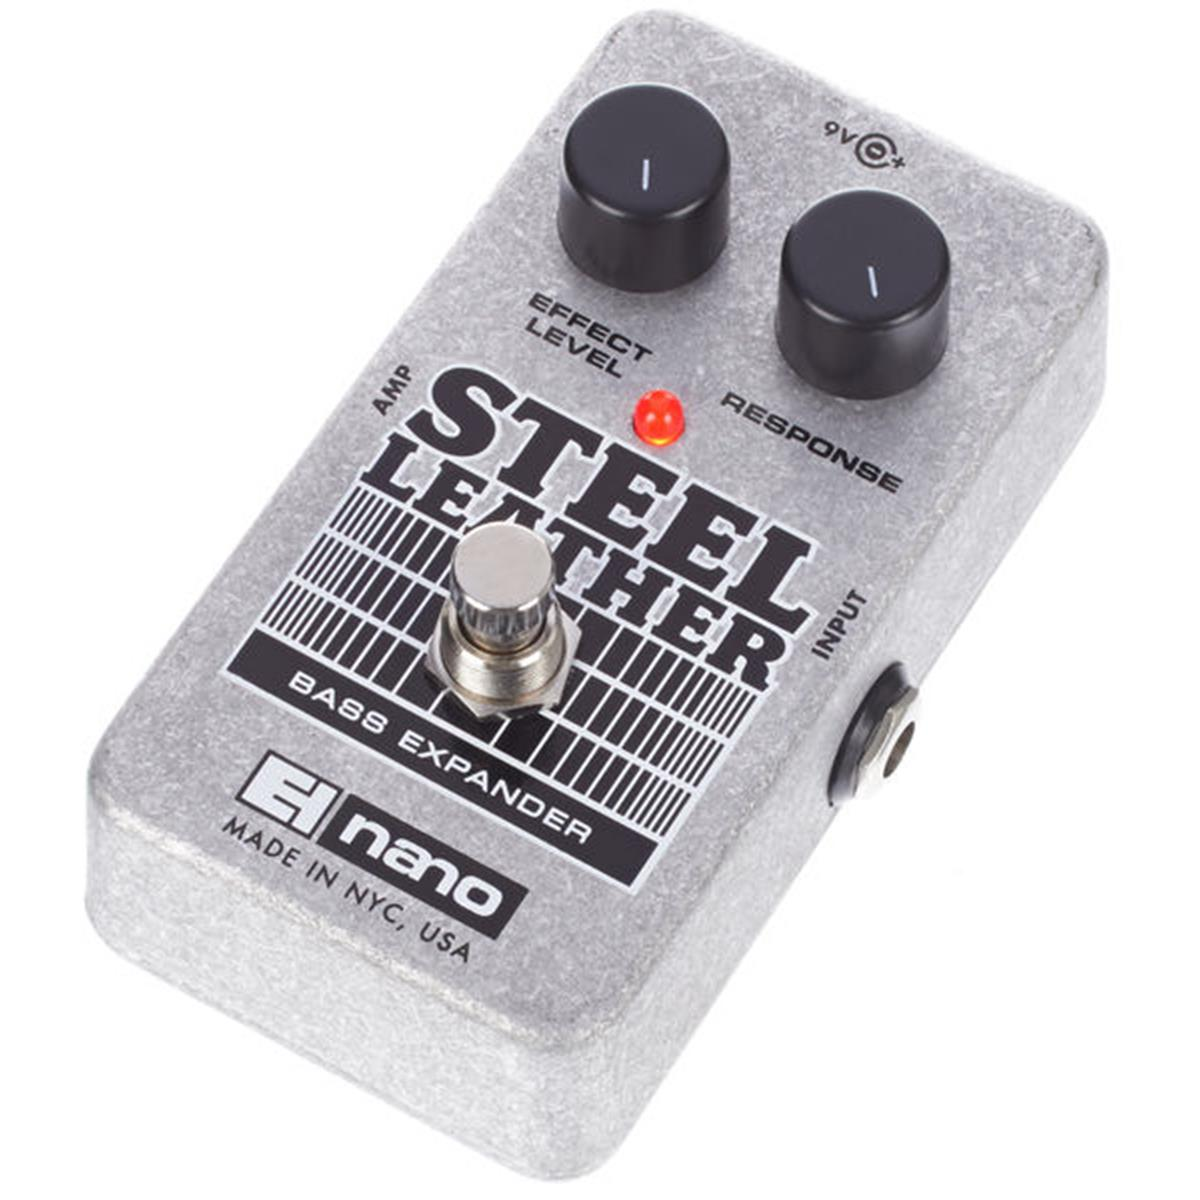 ELECTRO-HARMONIX-STEEL-LEATHER-sku-2354